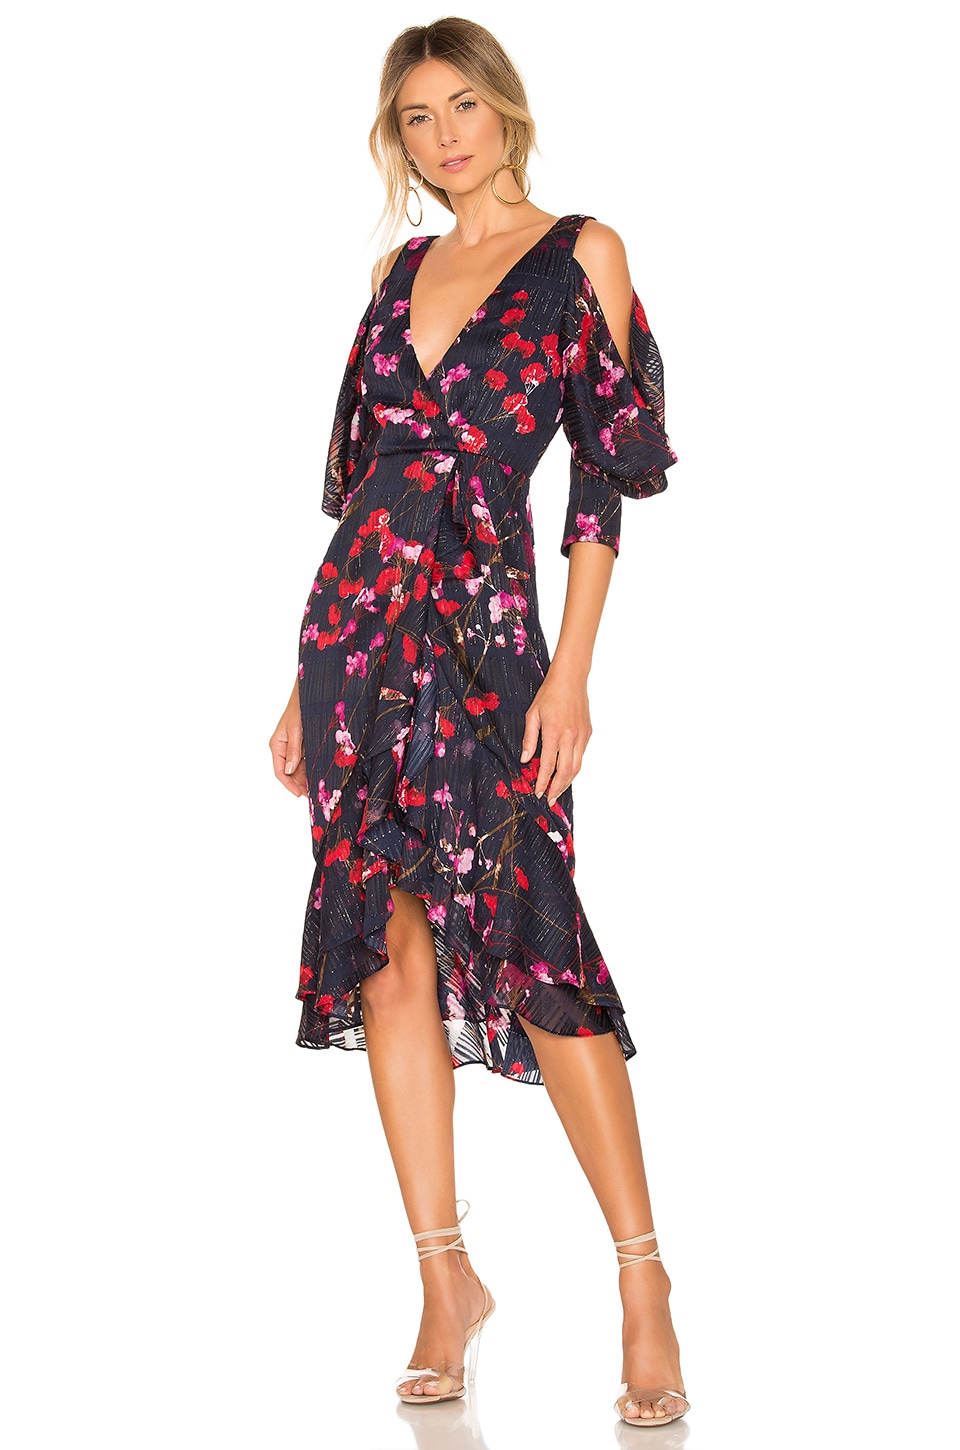 House of Harlow 1960 x REVOLVE Ginger Dress in Navy Floral